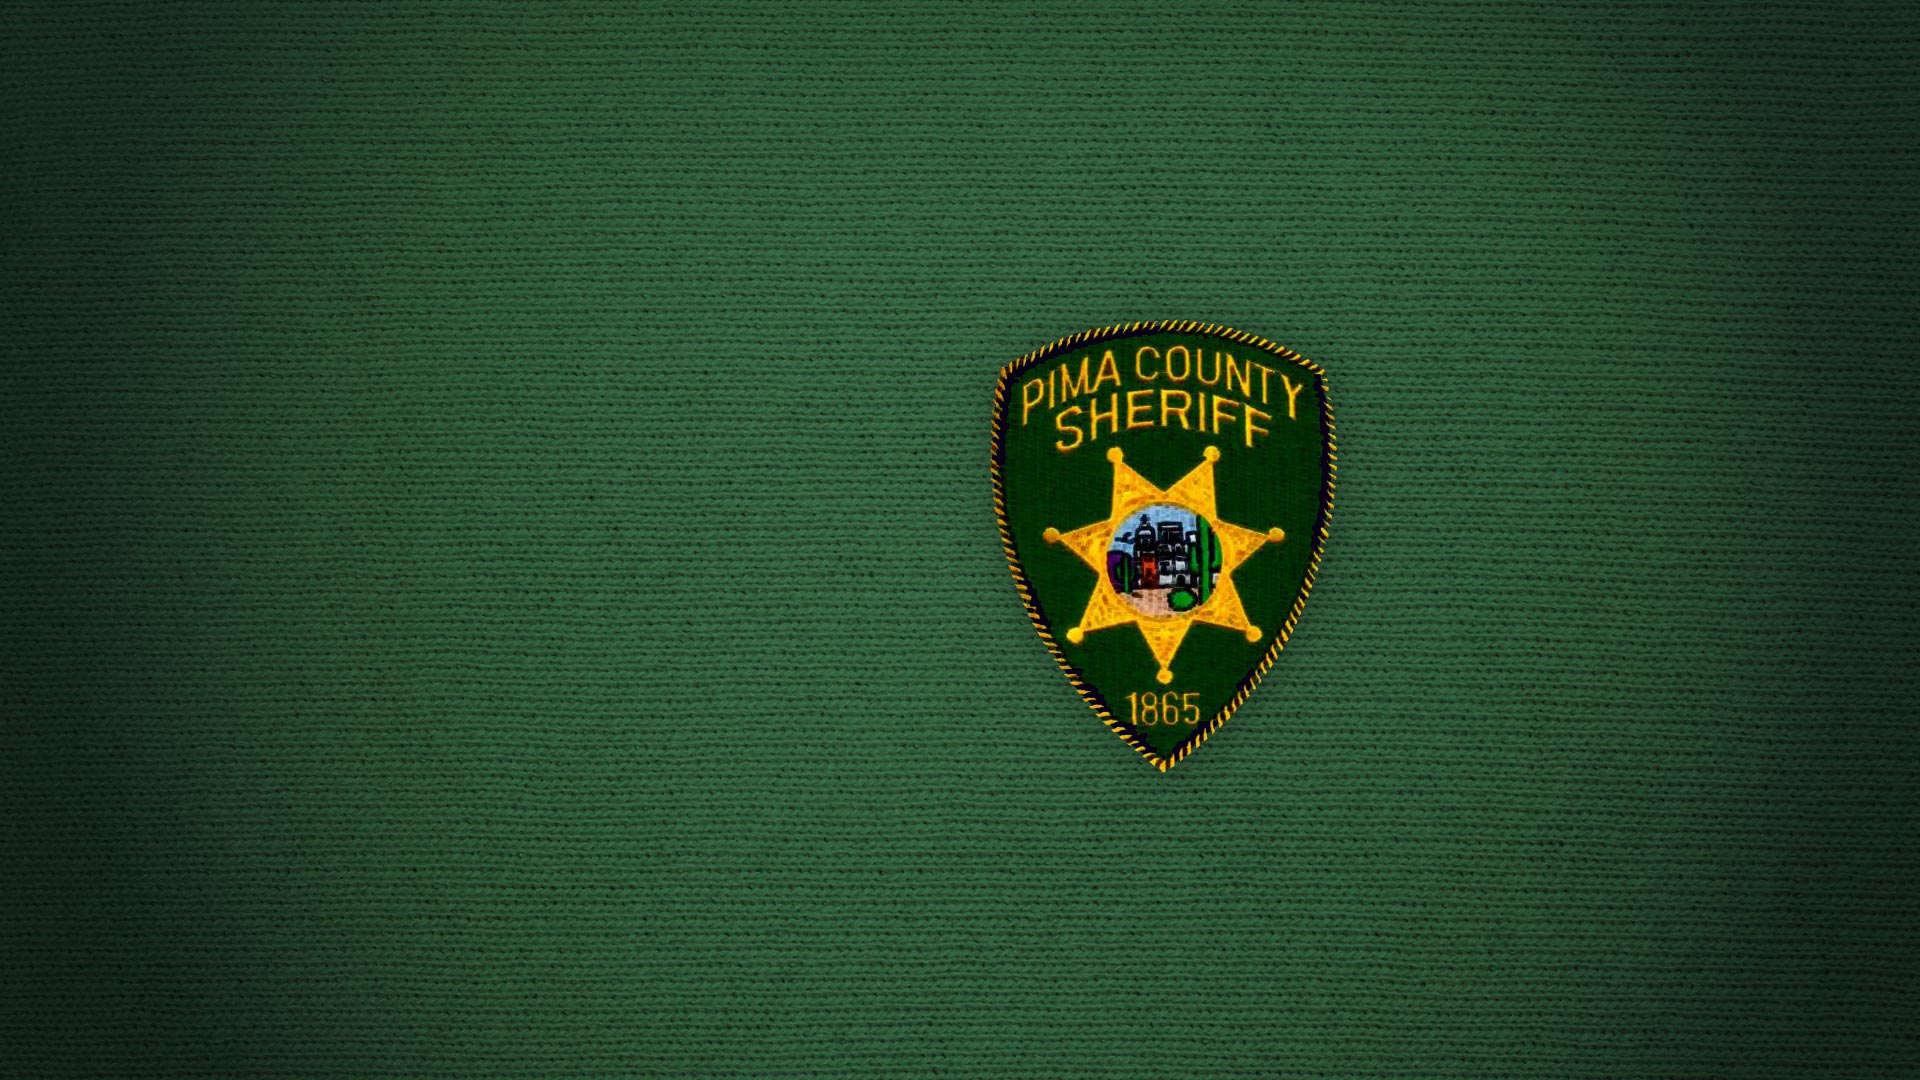 Pima County Sheriff patch hero